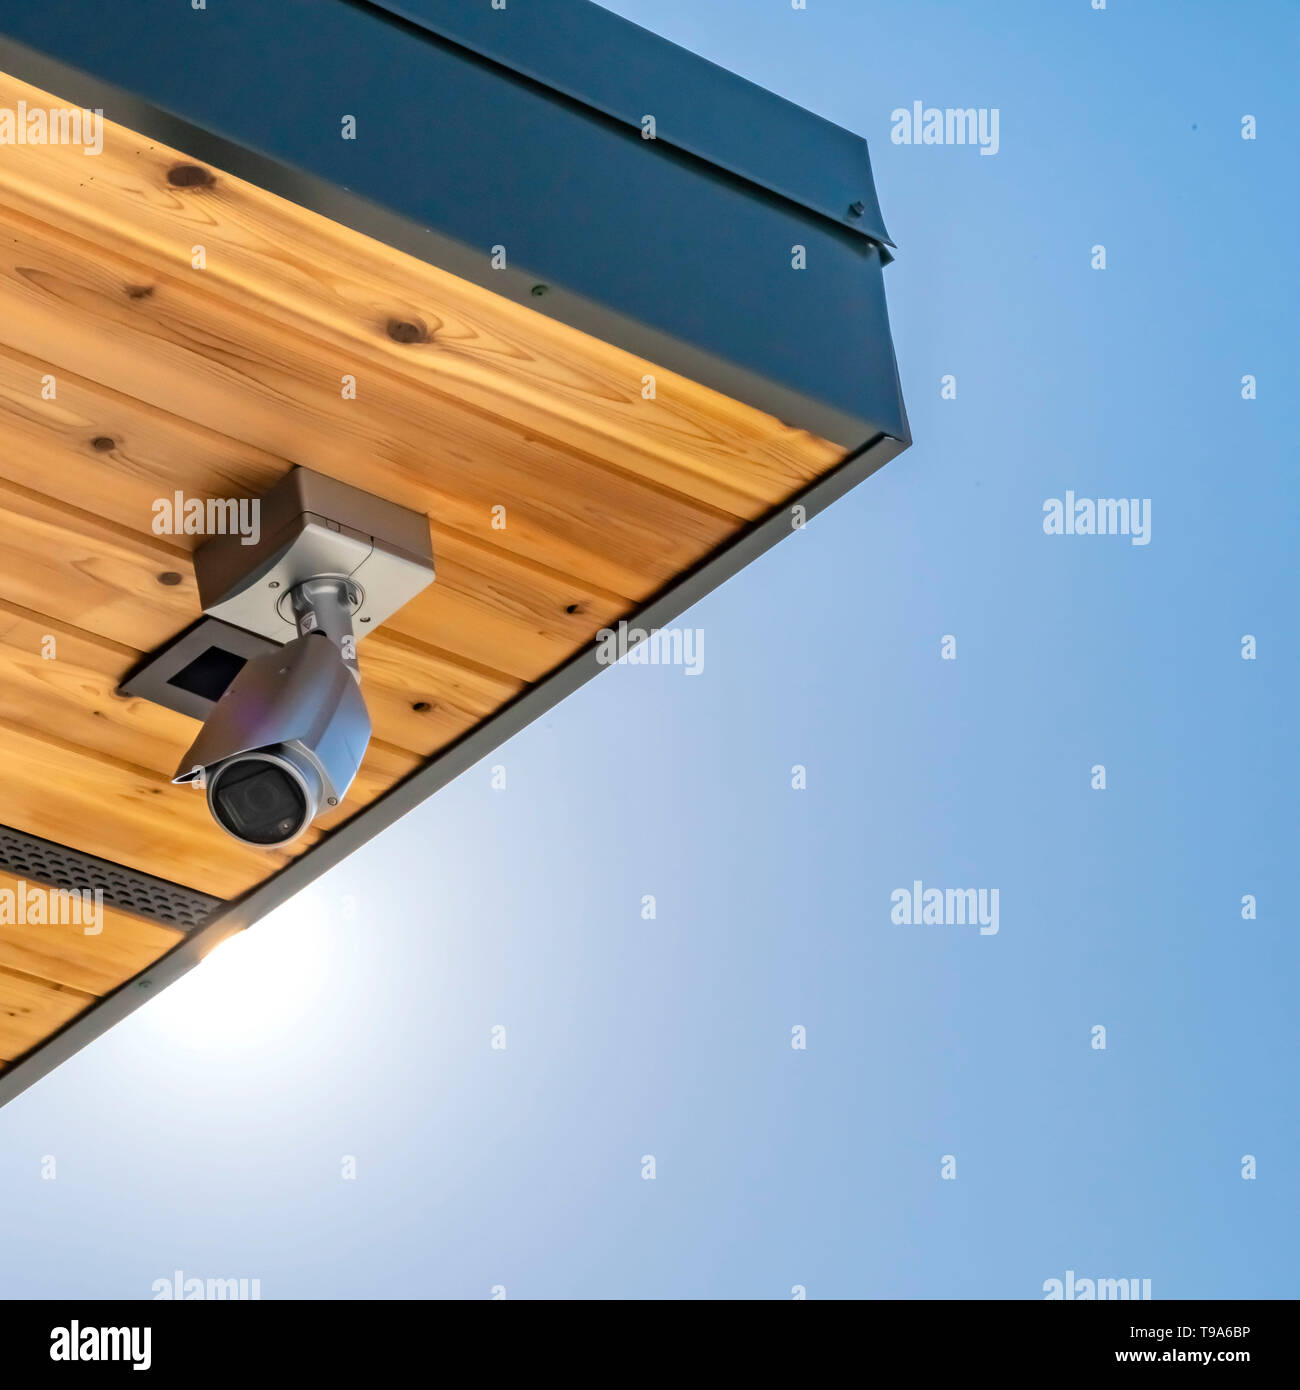 Clear Square Home with security camera installed on the wooden underside of its roof - Stock Image